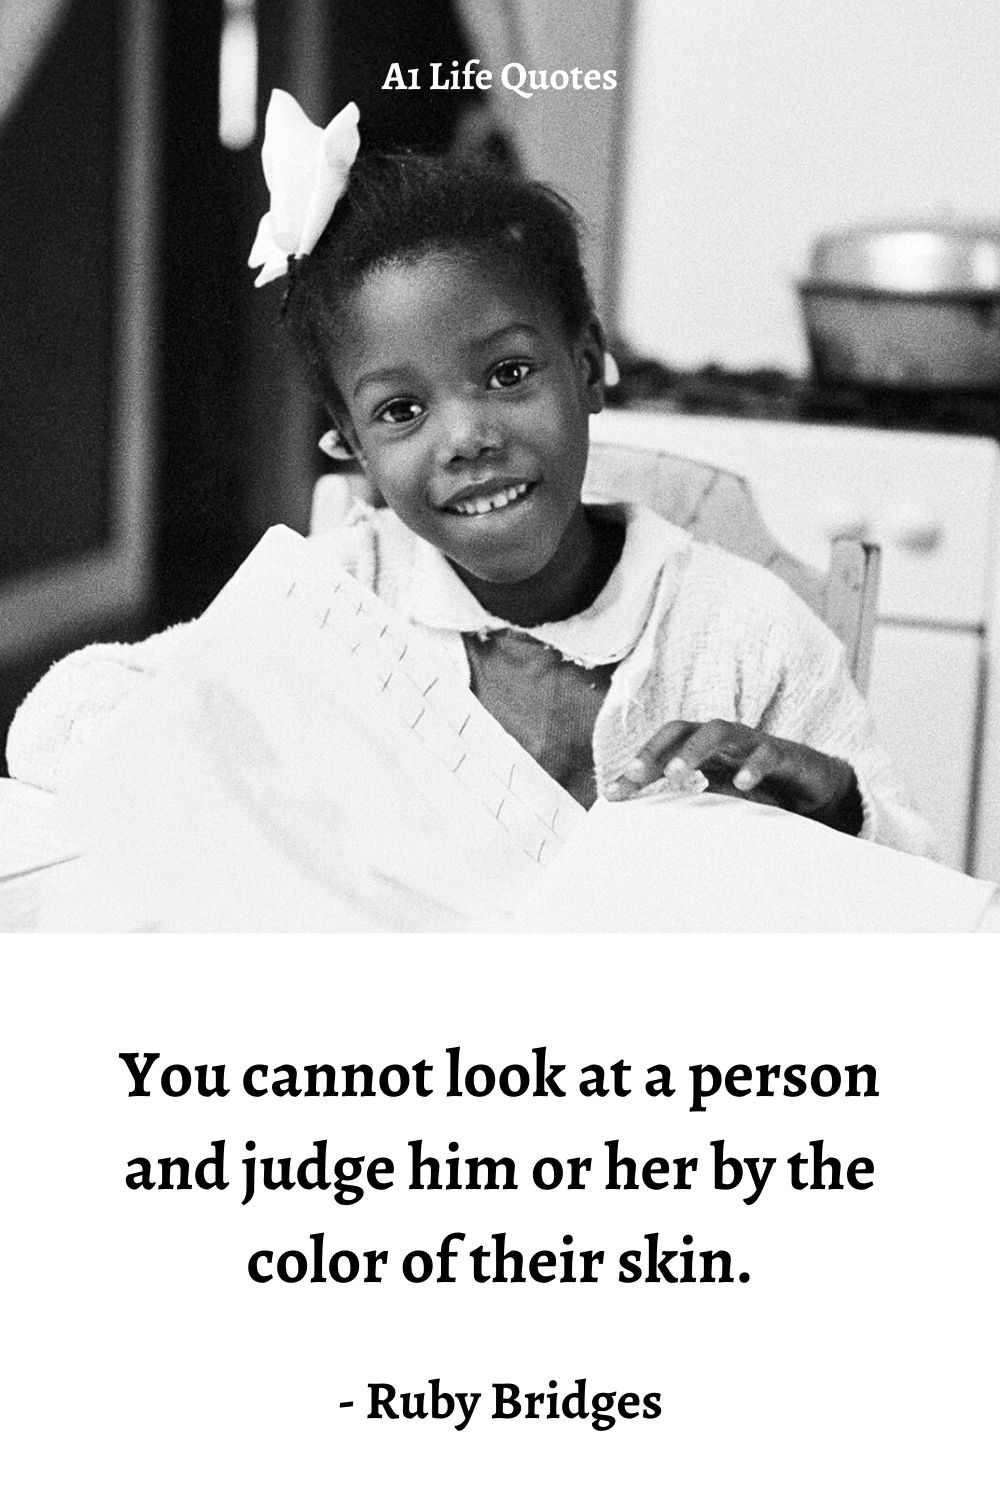 ruby bridges quotes on racism